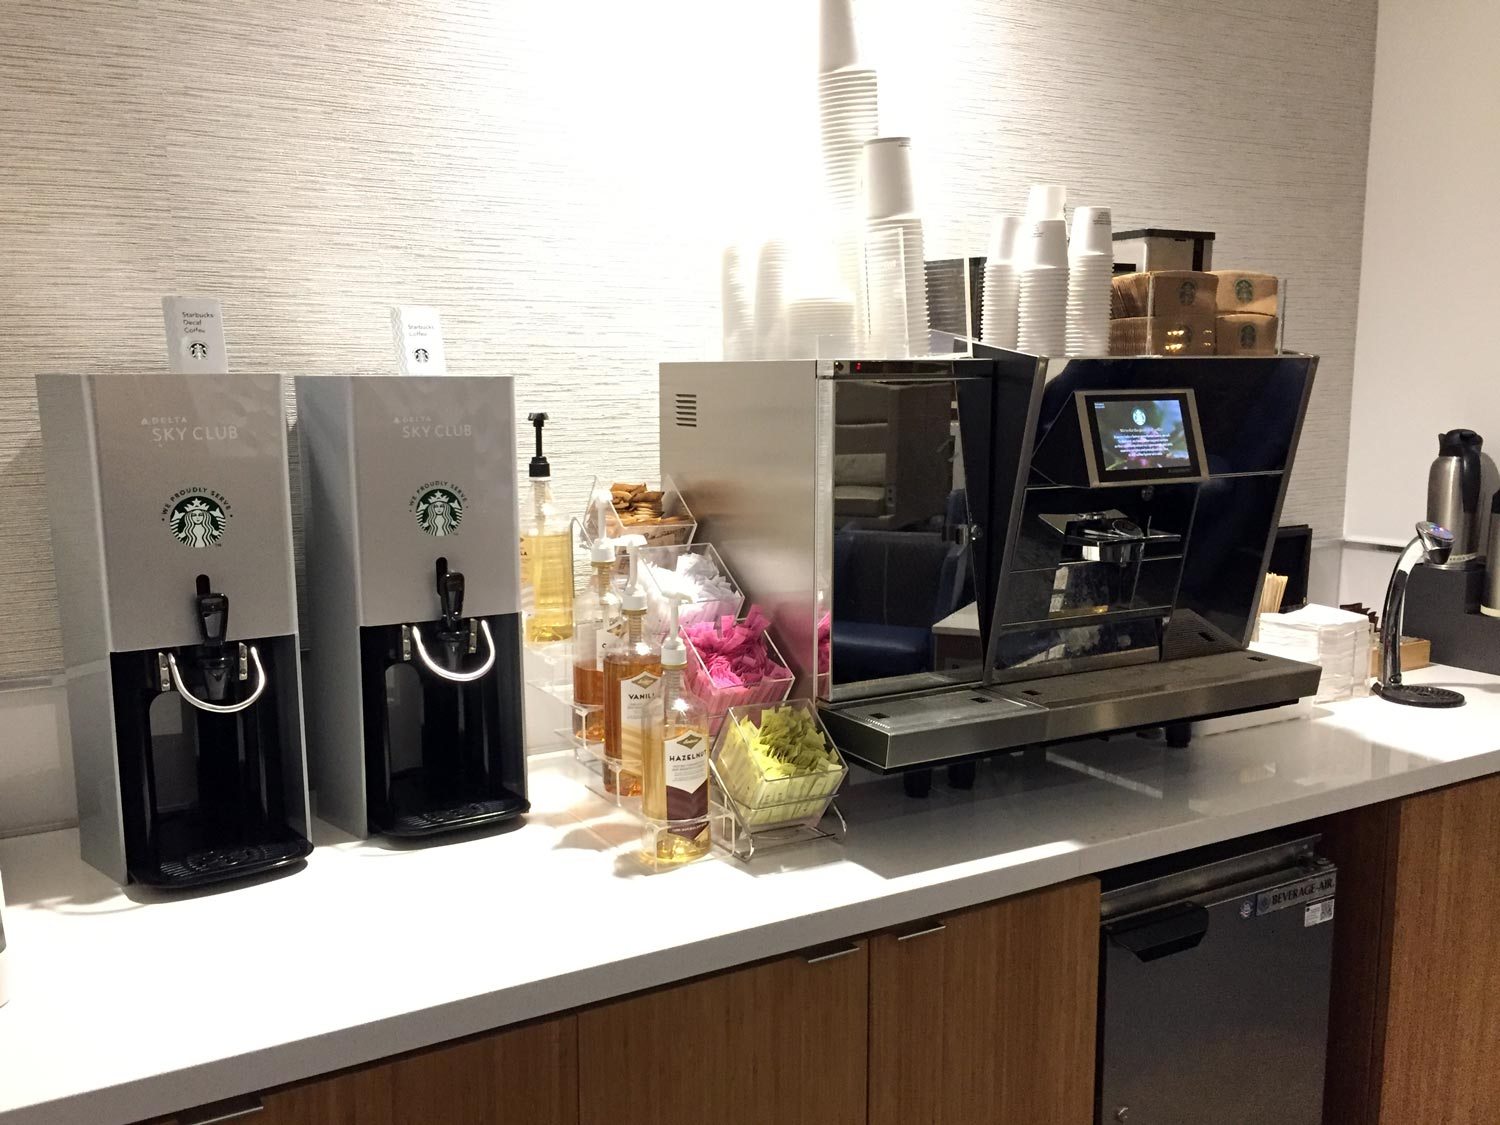 The typical Starbucks coffee station common to Delta Sky Clubs